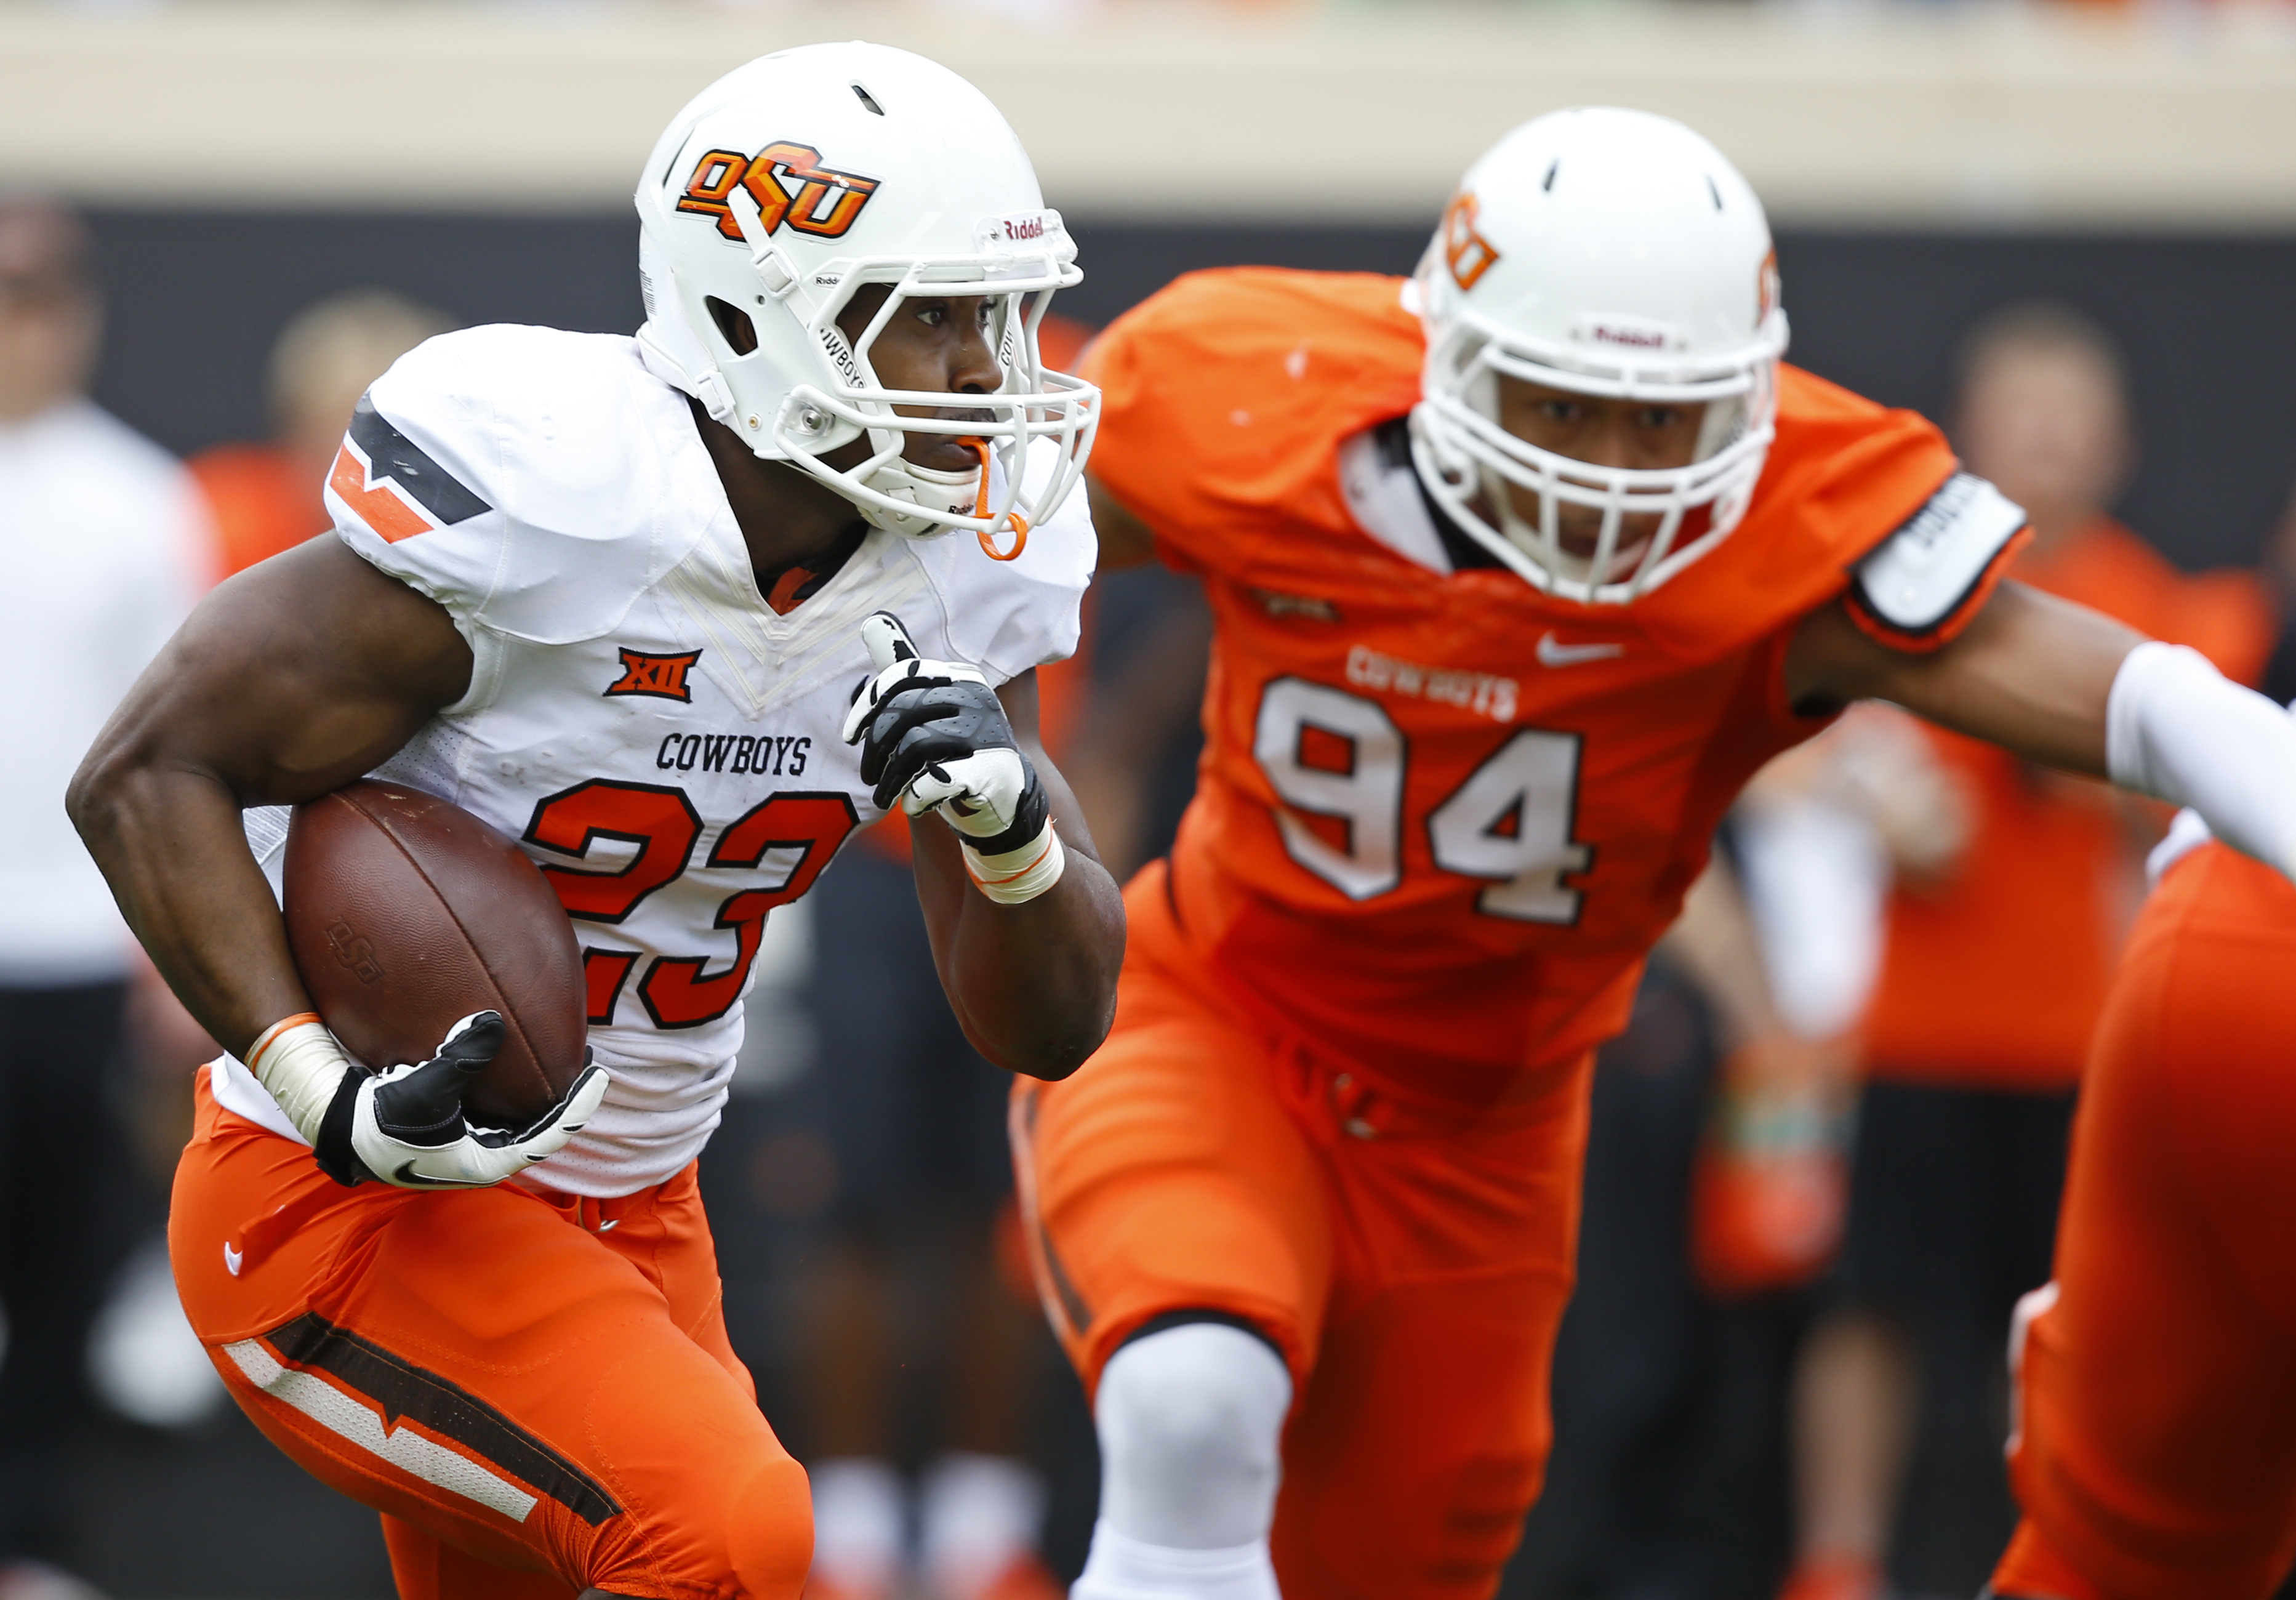 Oklahoma State running back Rennie Childs (23) carries past defender Jordan Brailford (94) in the first half of the Oklahoma State NCAA college spring football game Stillwater, Okla, Saturday, April 18, 2015. (AP Photo/Sue Ogrocki)